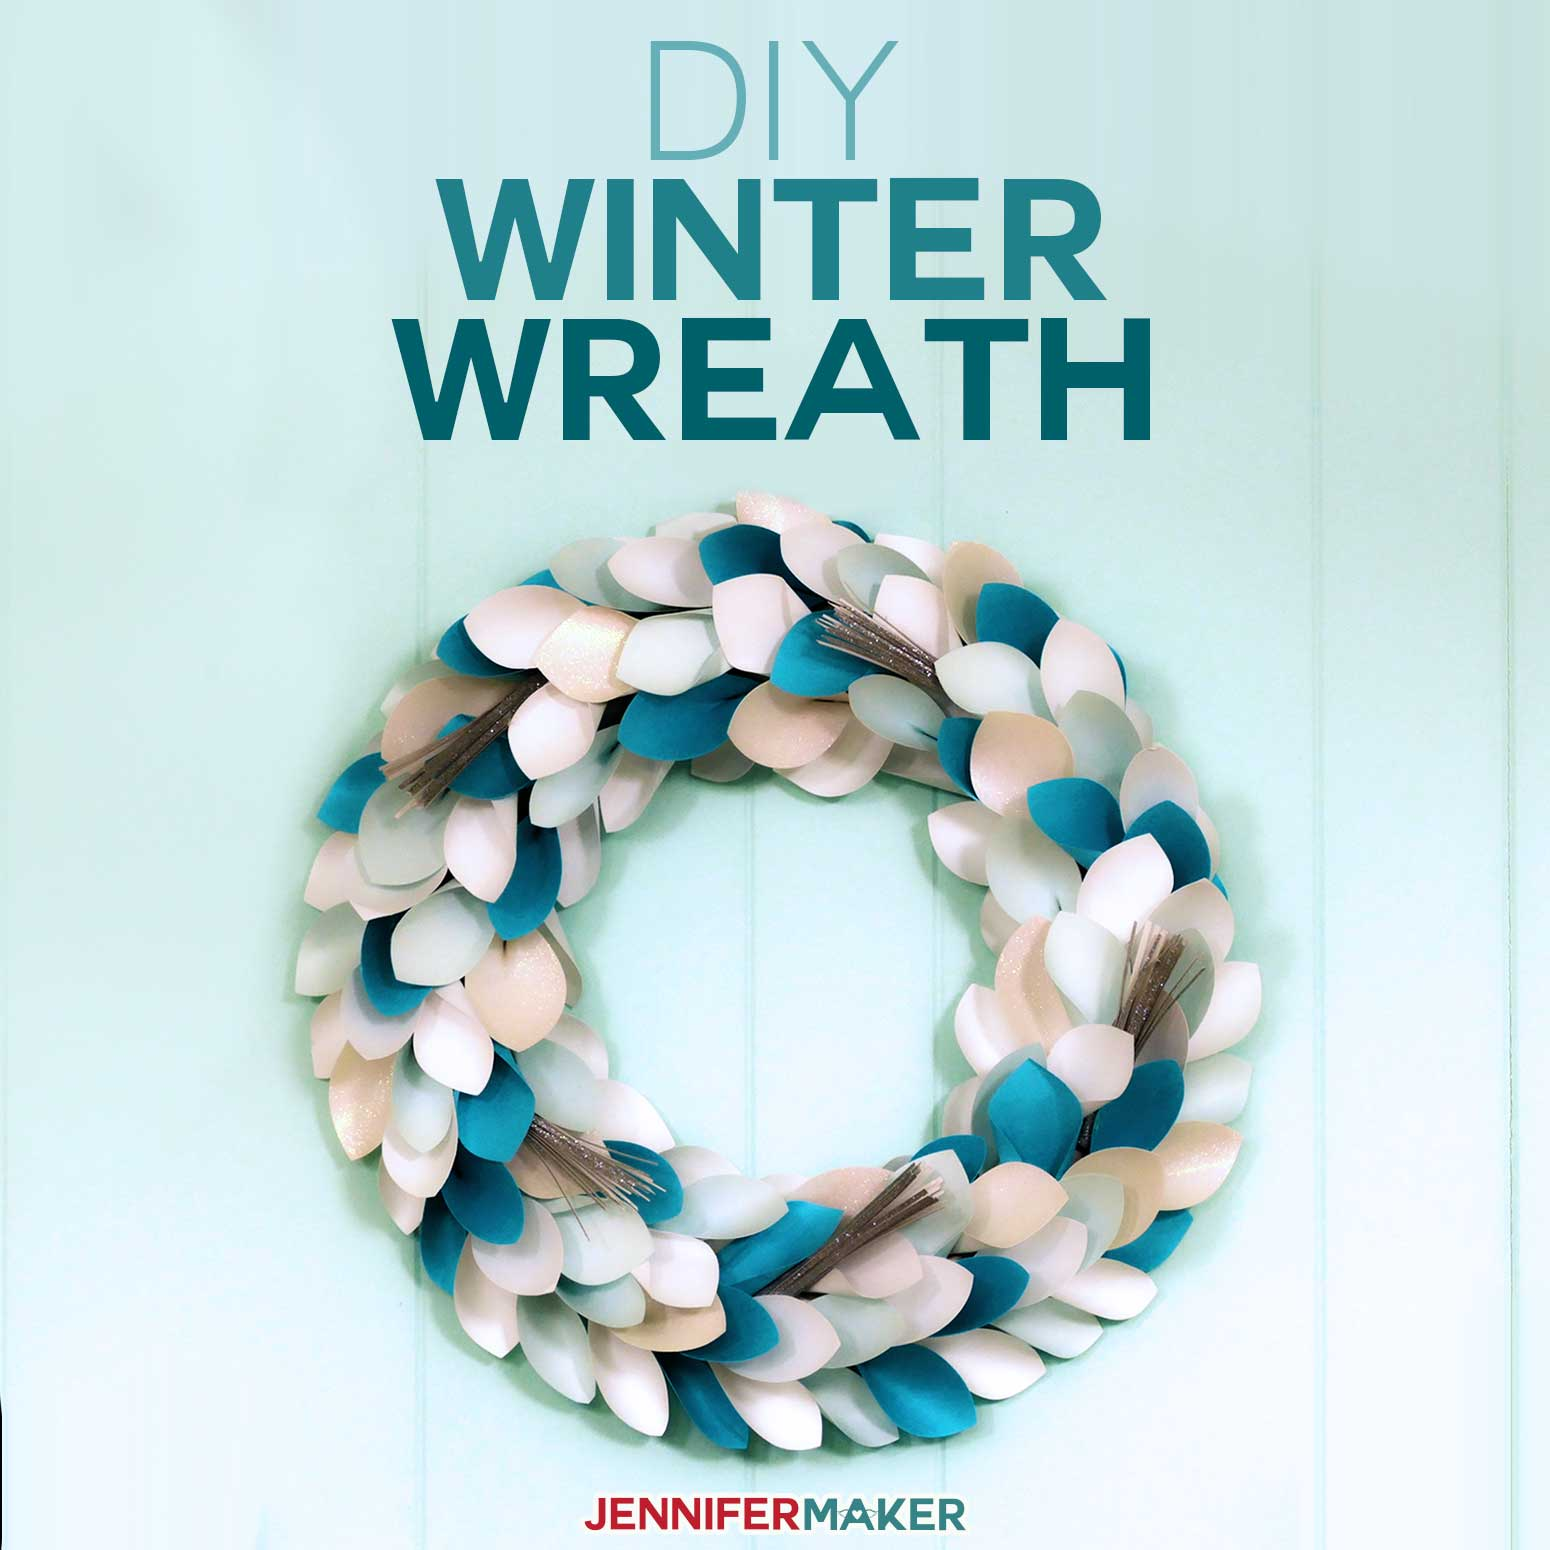 DIY Winter Wreath Made from Paper on a Cricut | Christmas Wreath | DIY Home Decor | #cricut #wreath #christmas